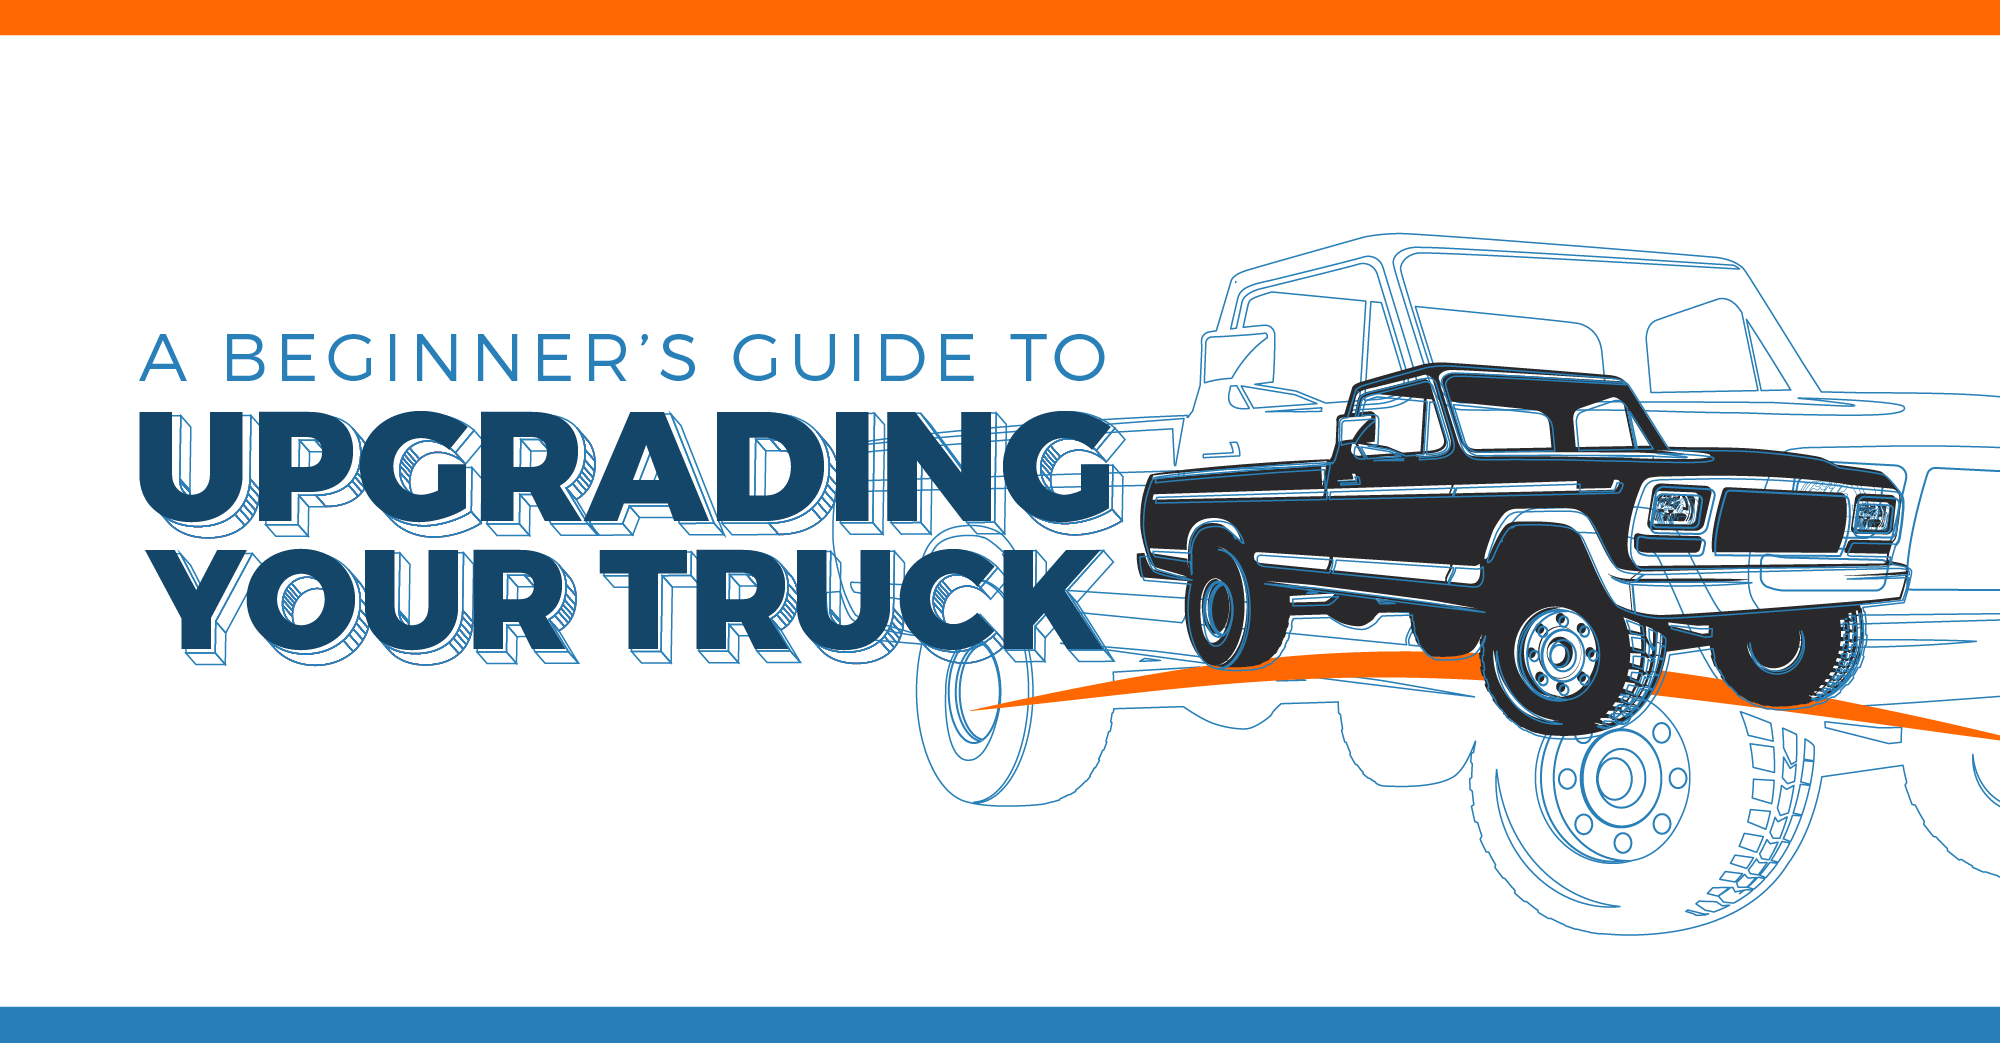 Beginner's Guide to Upgrading Your Truck